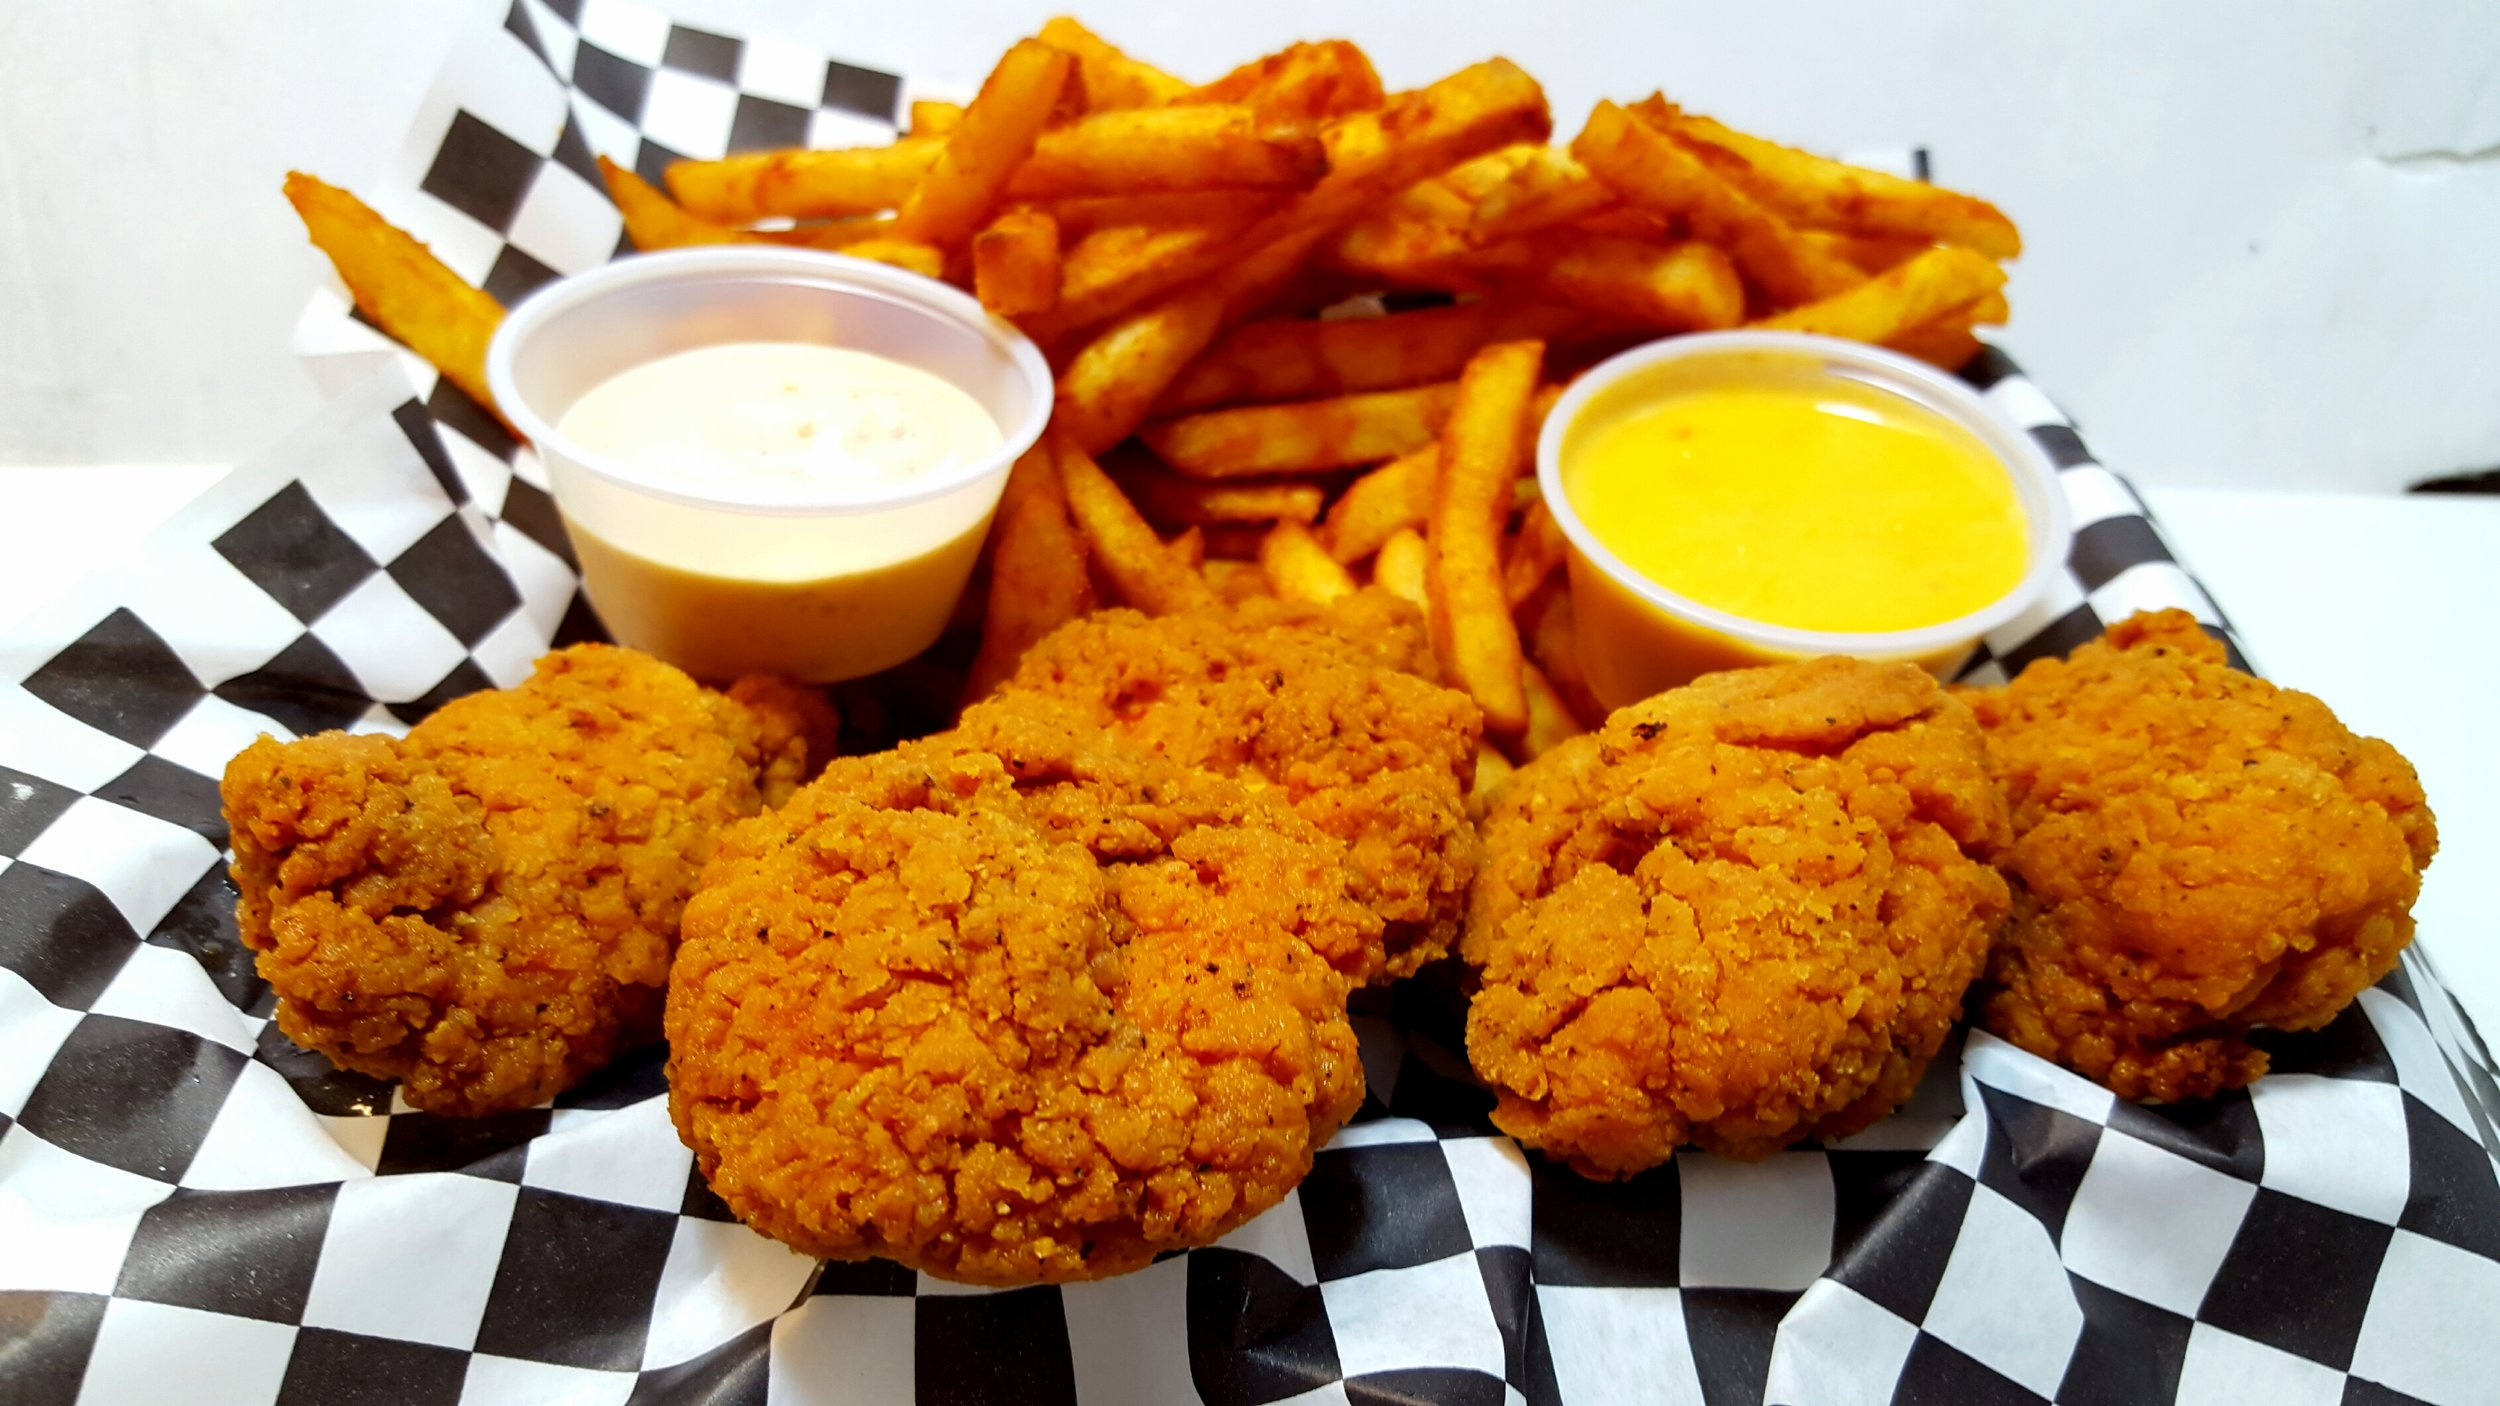 CHICKEN TENDER BASKET:  Four crispy chicken tenders fried to perfection with a side of seasoned battered fries, and your choice of homemade melted  queso and jalapeño ranch .